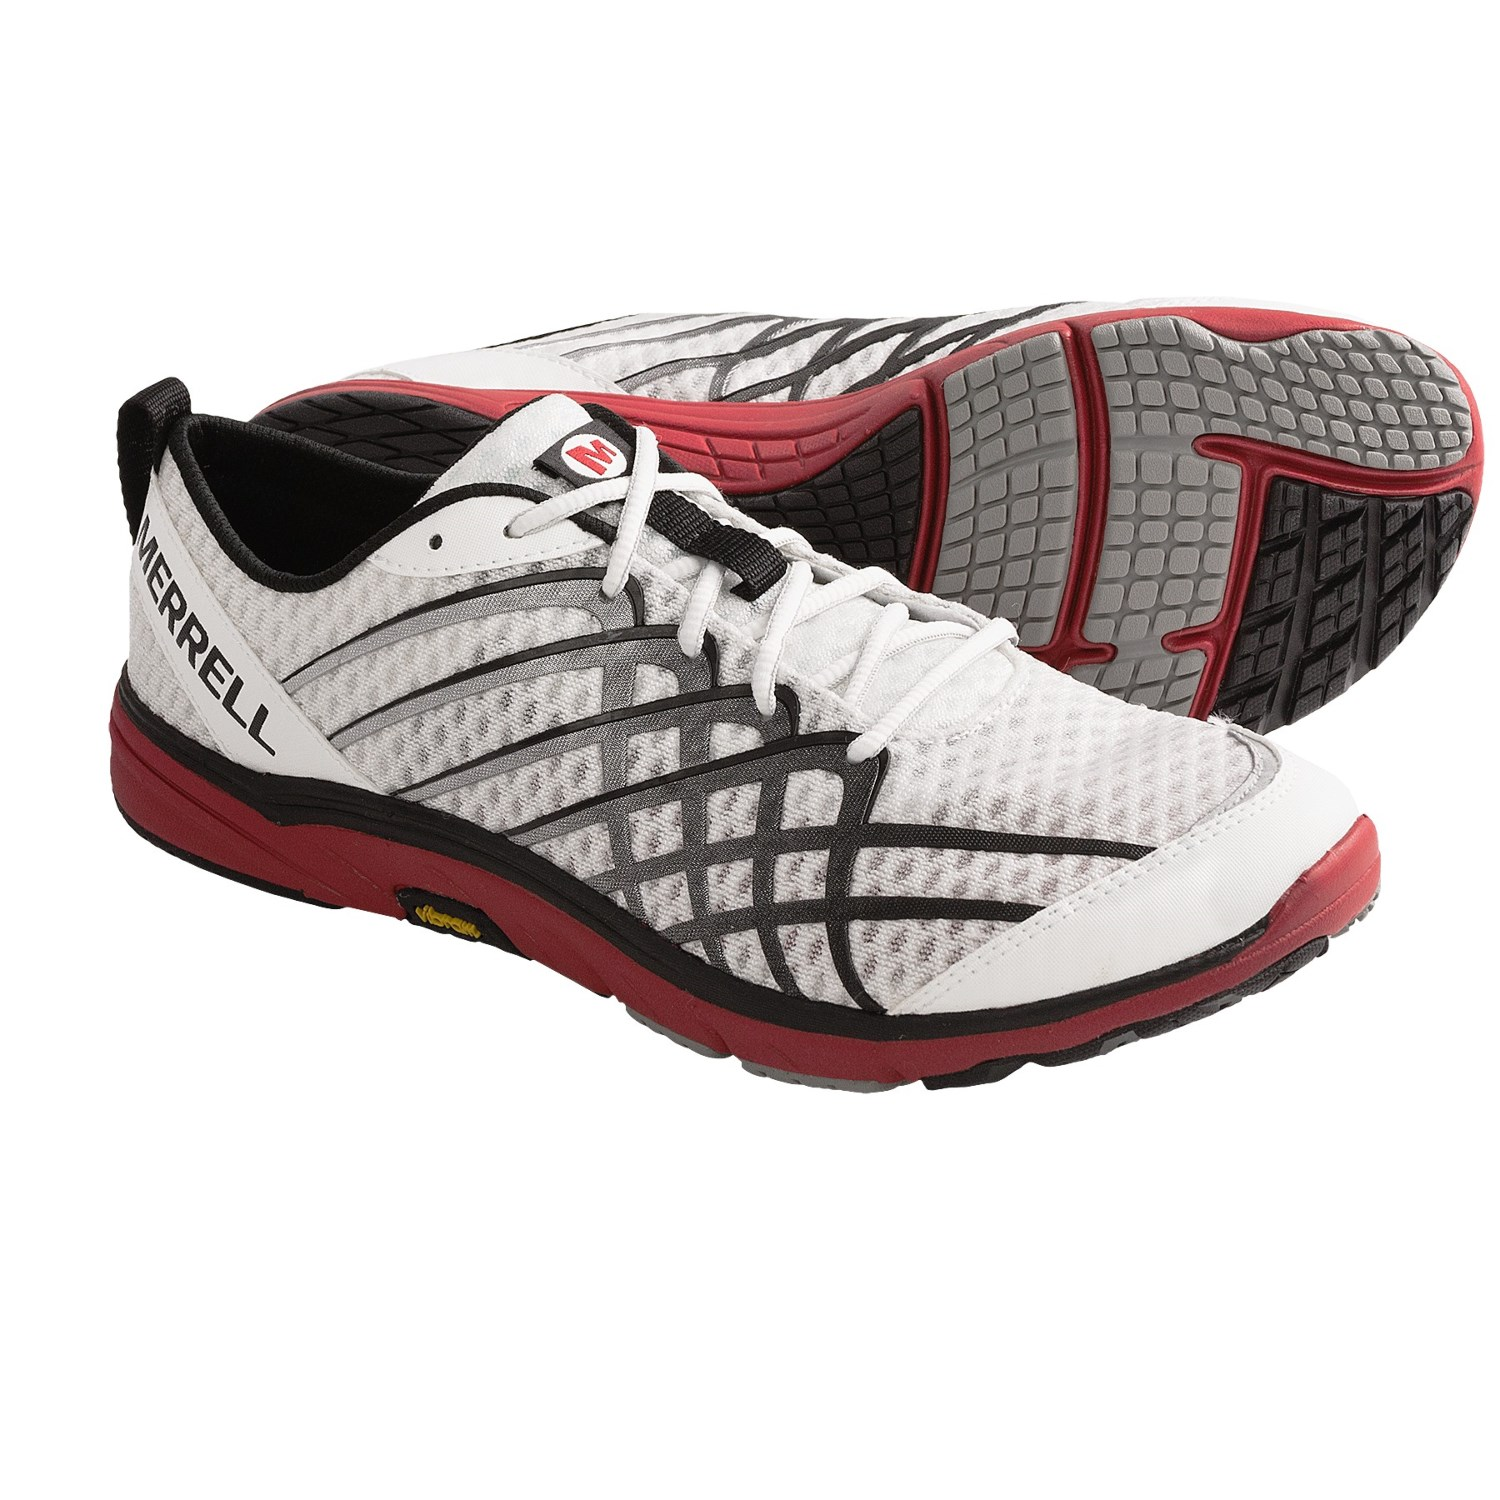 Merrell Barefoot Bare Access 2 Running Shoes - Minimalist ...